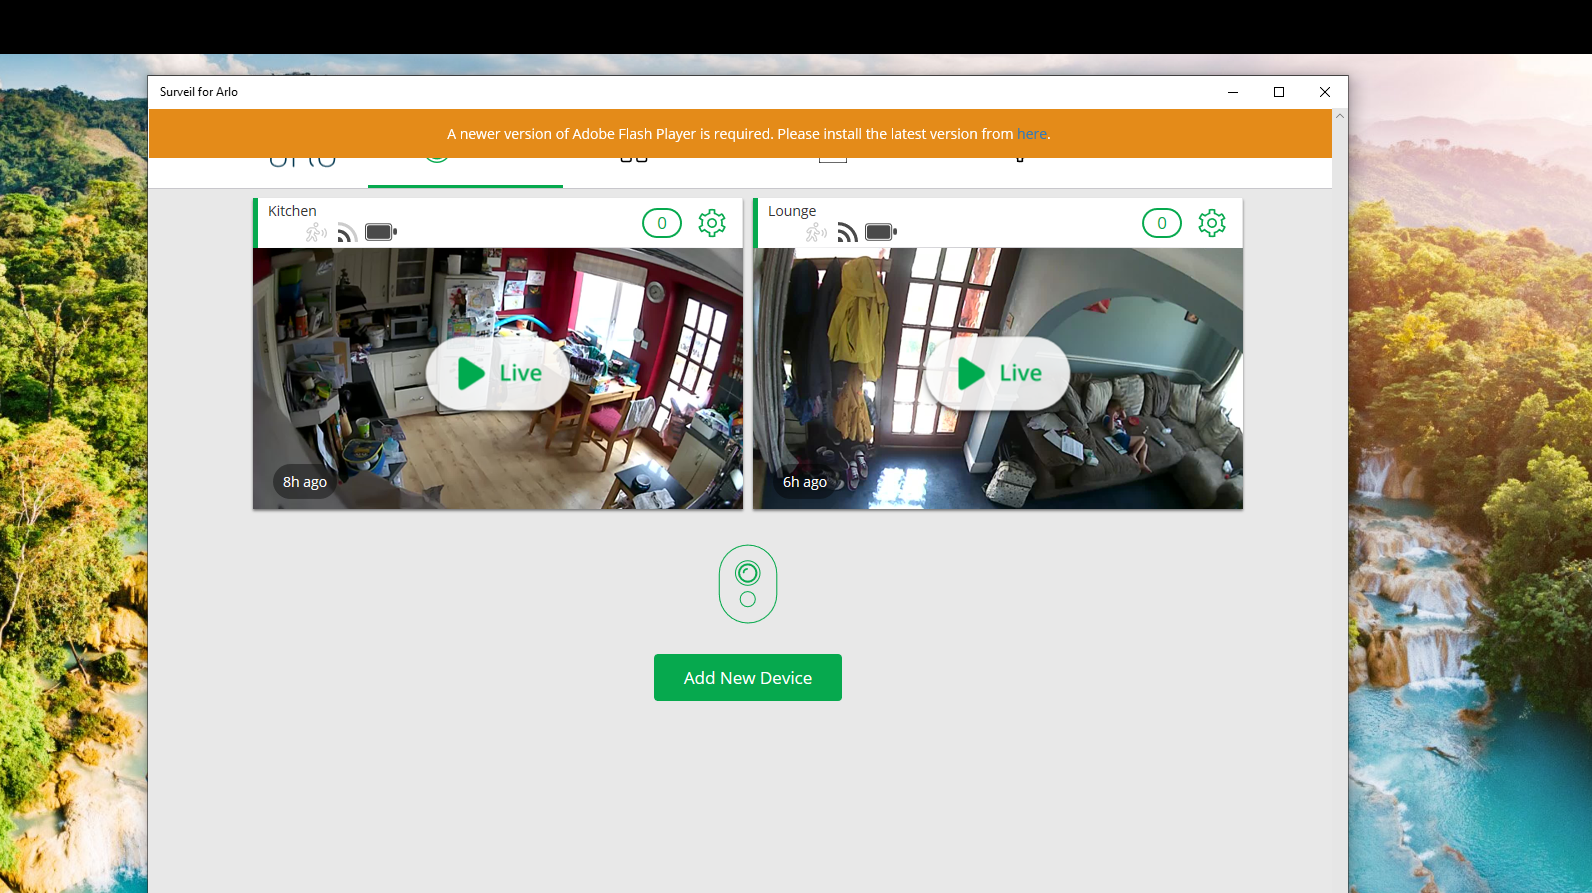 Surveil for Arlo app issue with flash player on wi    - Arlo